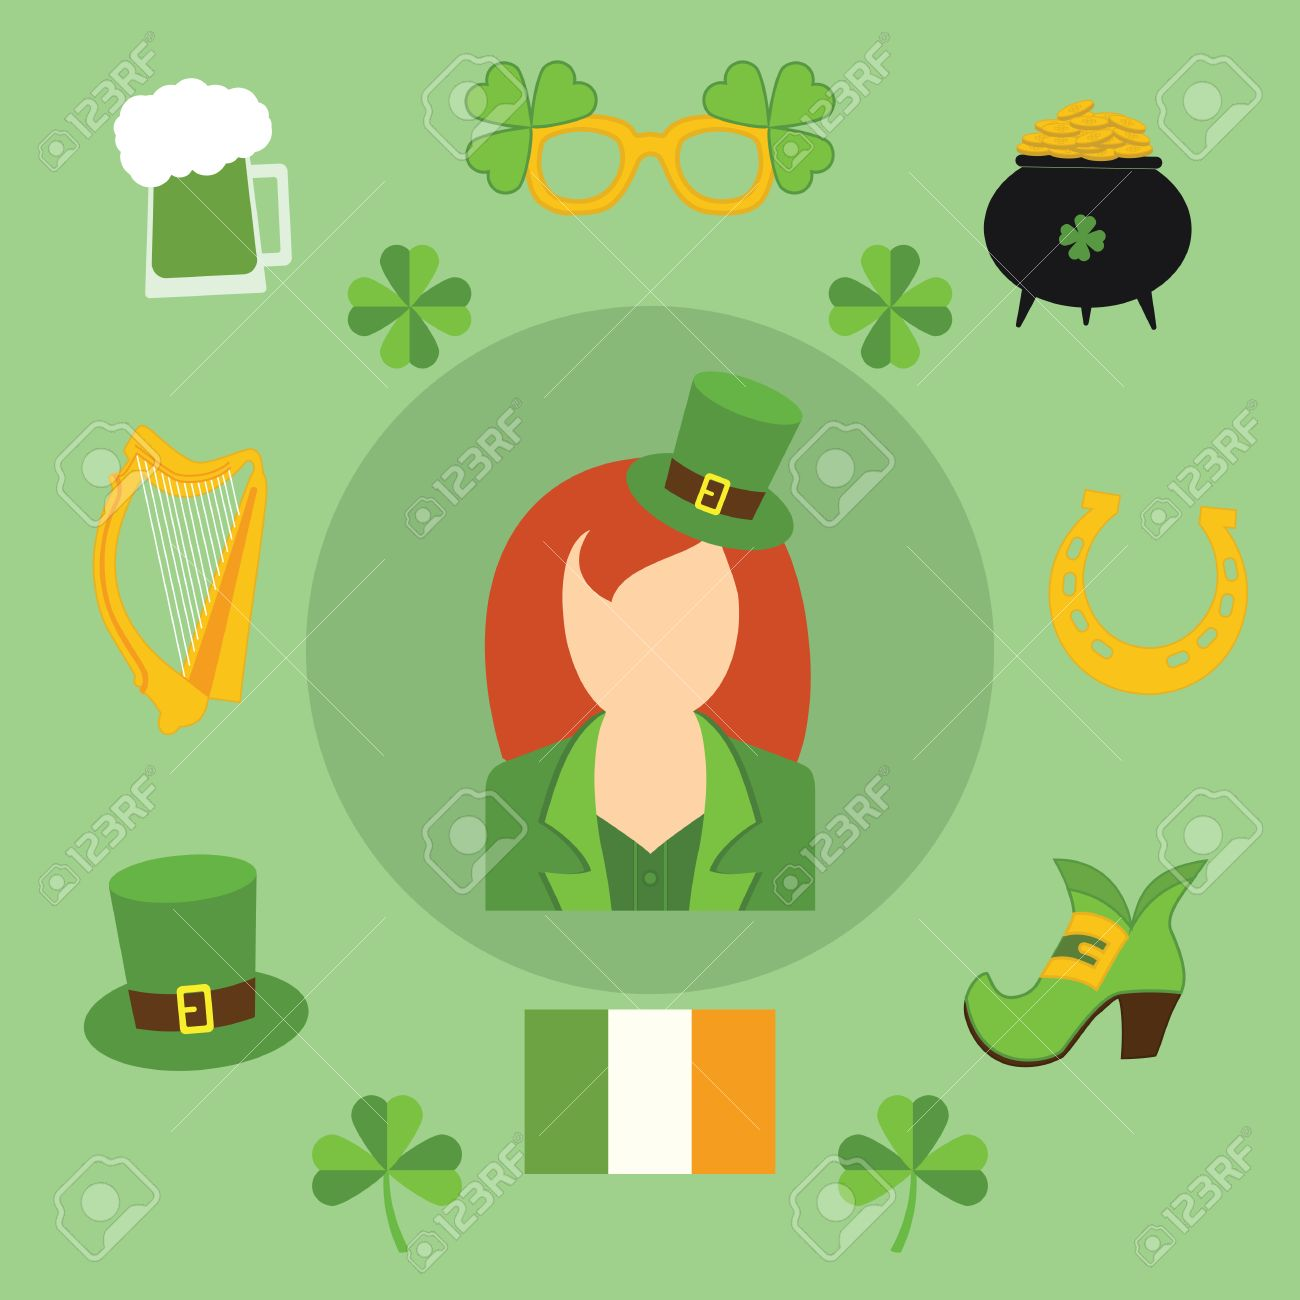 Happy St Patricks Day Vector Illustration Icons Traditional Royalty Free Cliparts Vectors And Stock Illustration Image 36904243